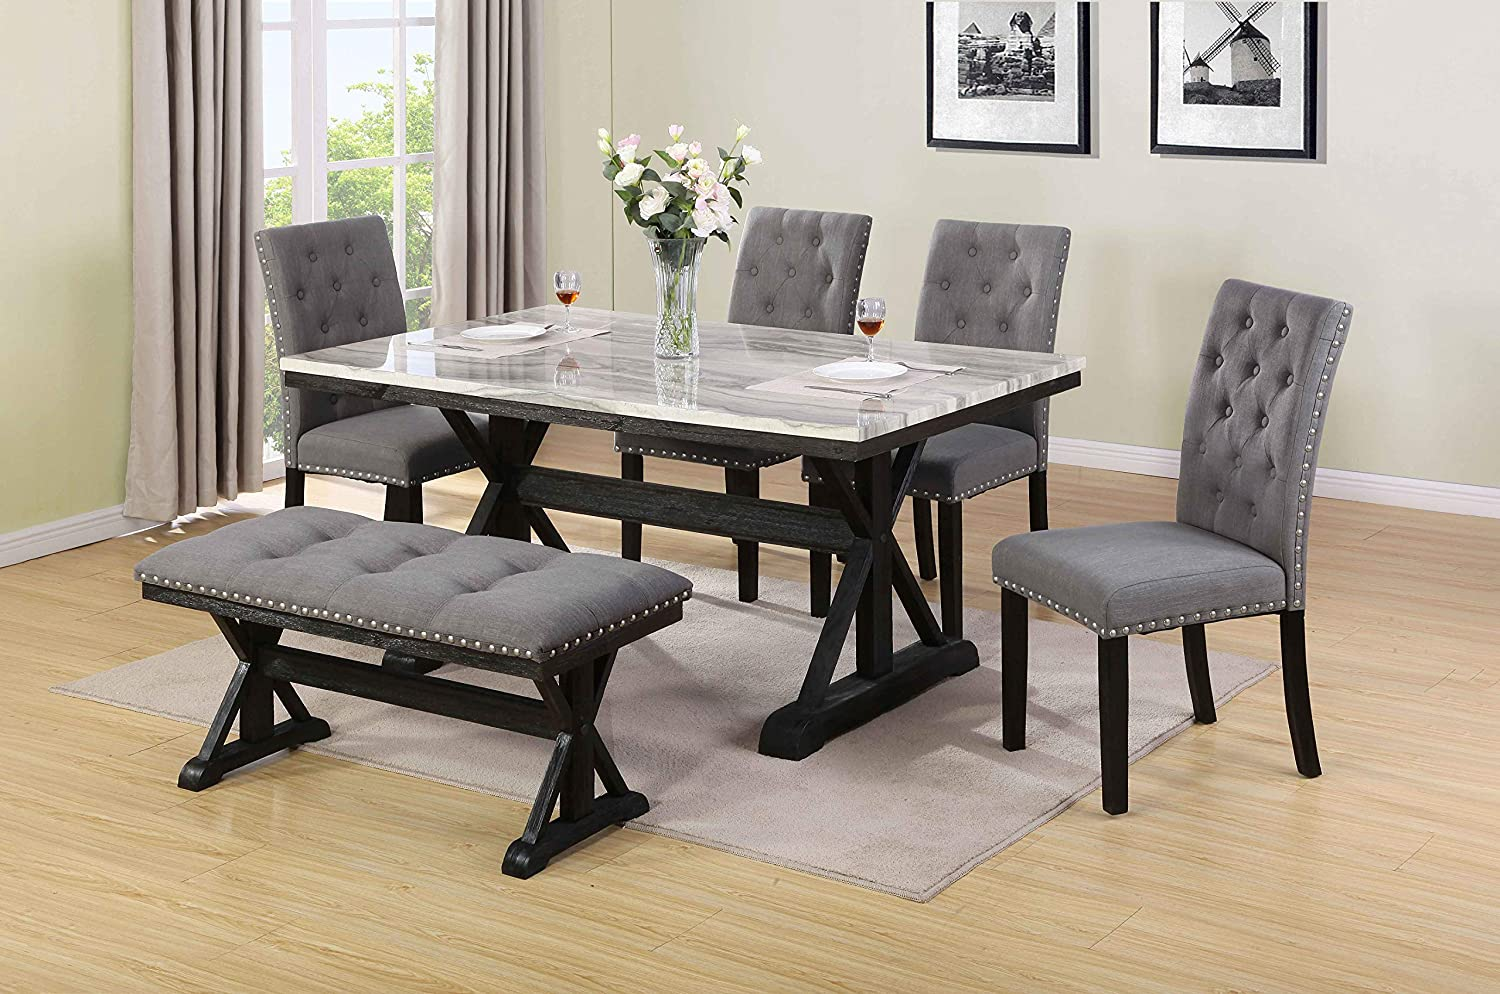 Surprising Best Quality Furniture D116 D6 6Pc Dining Set 1 Table 4 Chairs 1 Bench Gray Creativecarmelina Interior Chair Design Creativecarmelinacom